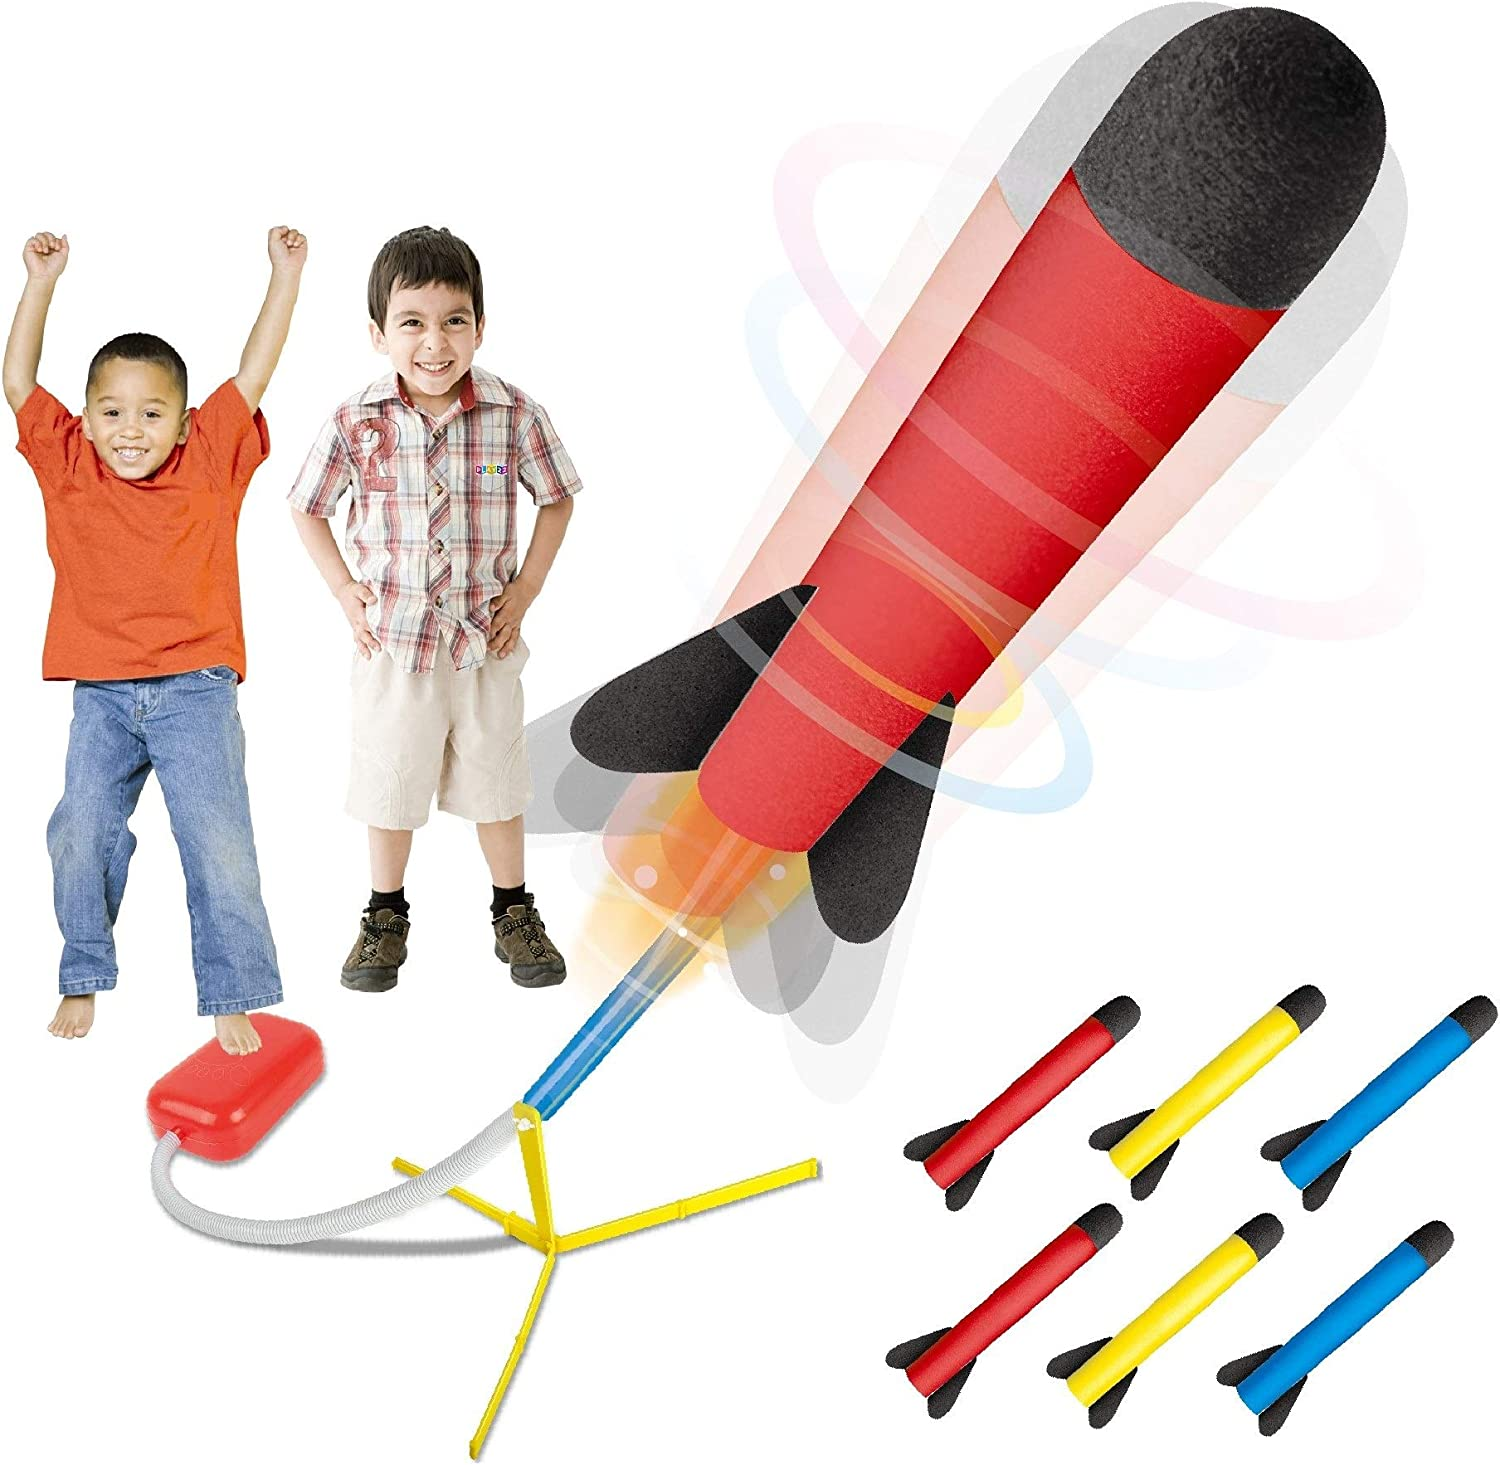 Foam Tipped Rocket Launcher Jump Foot Trigger with 2 Darts . ROSEBEAR Outdoor Activity Play Kids Toy Set